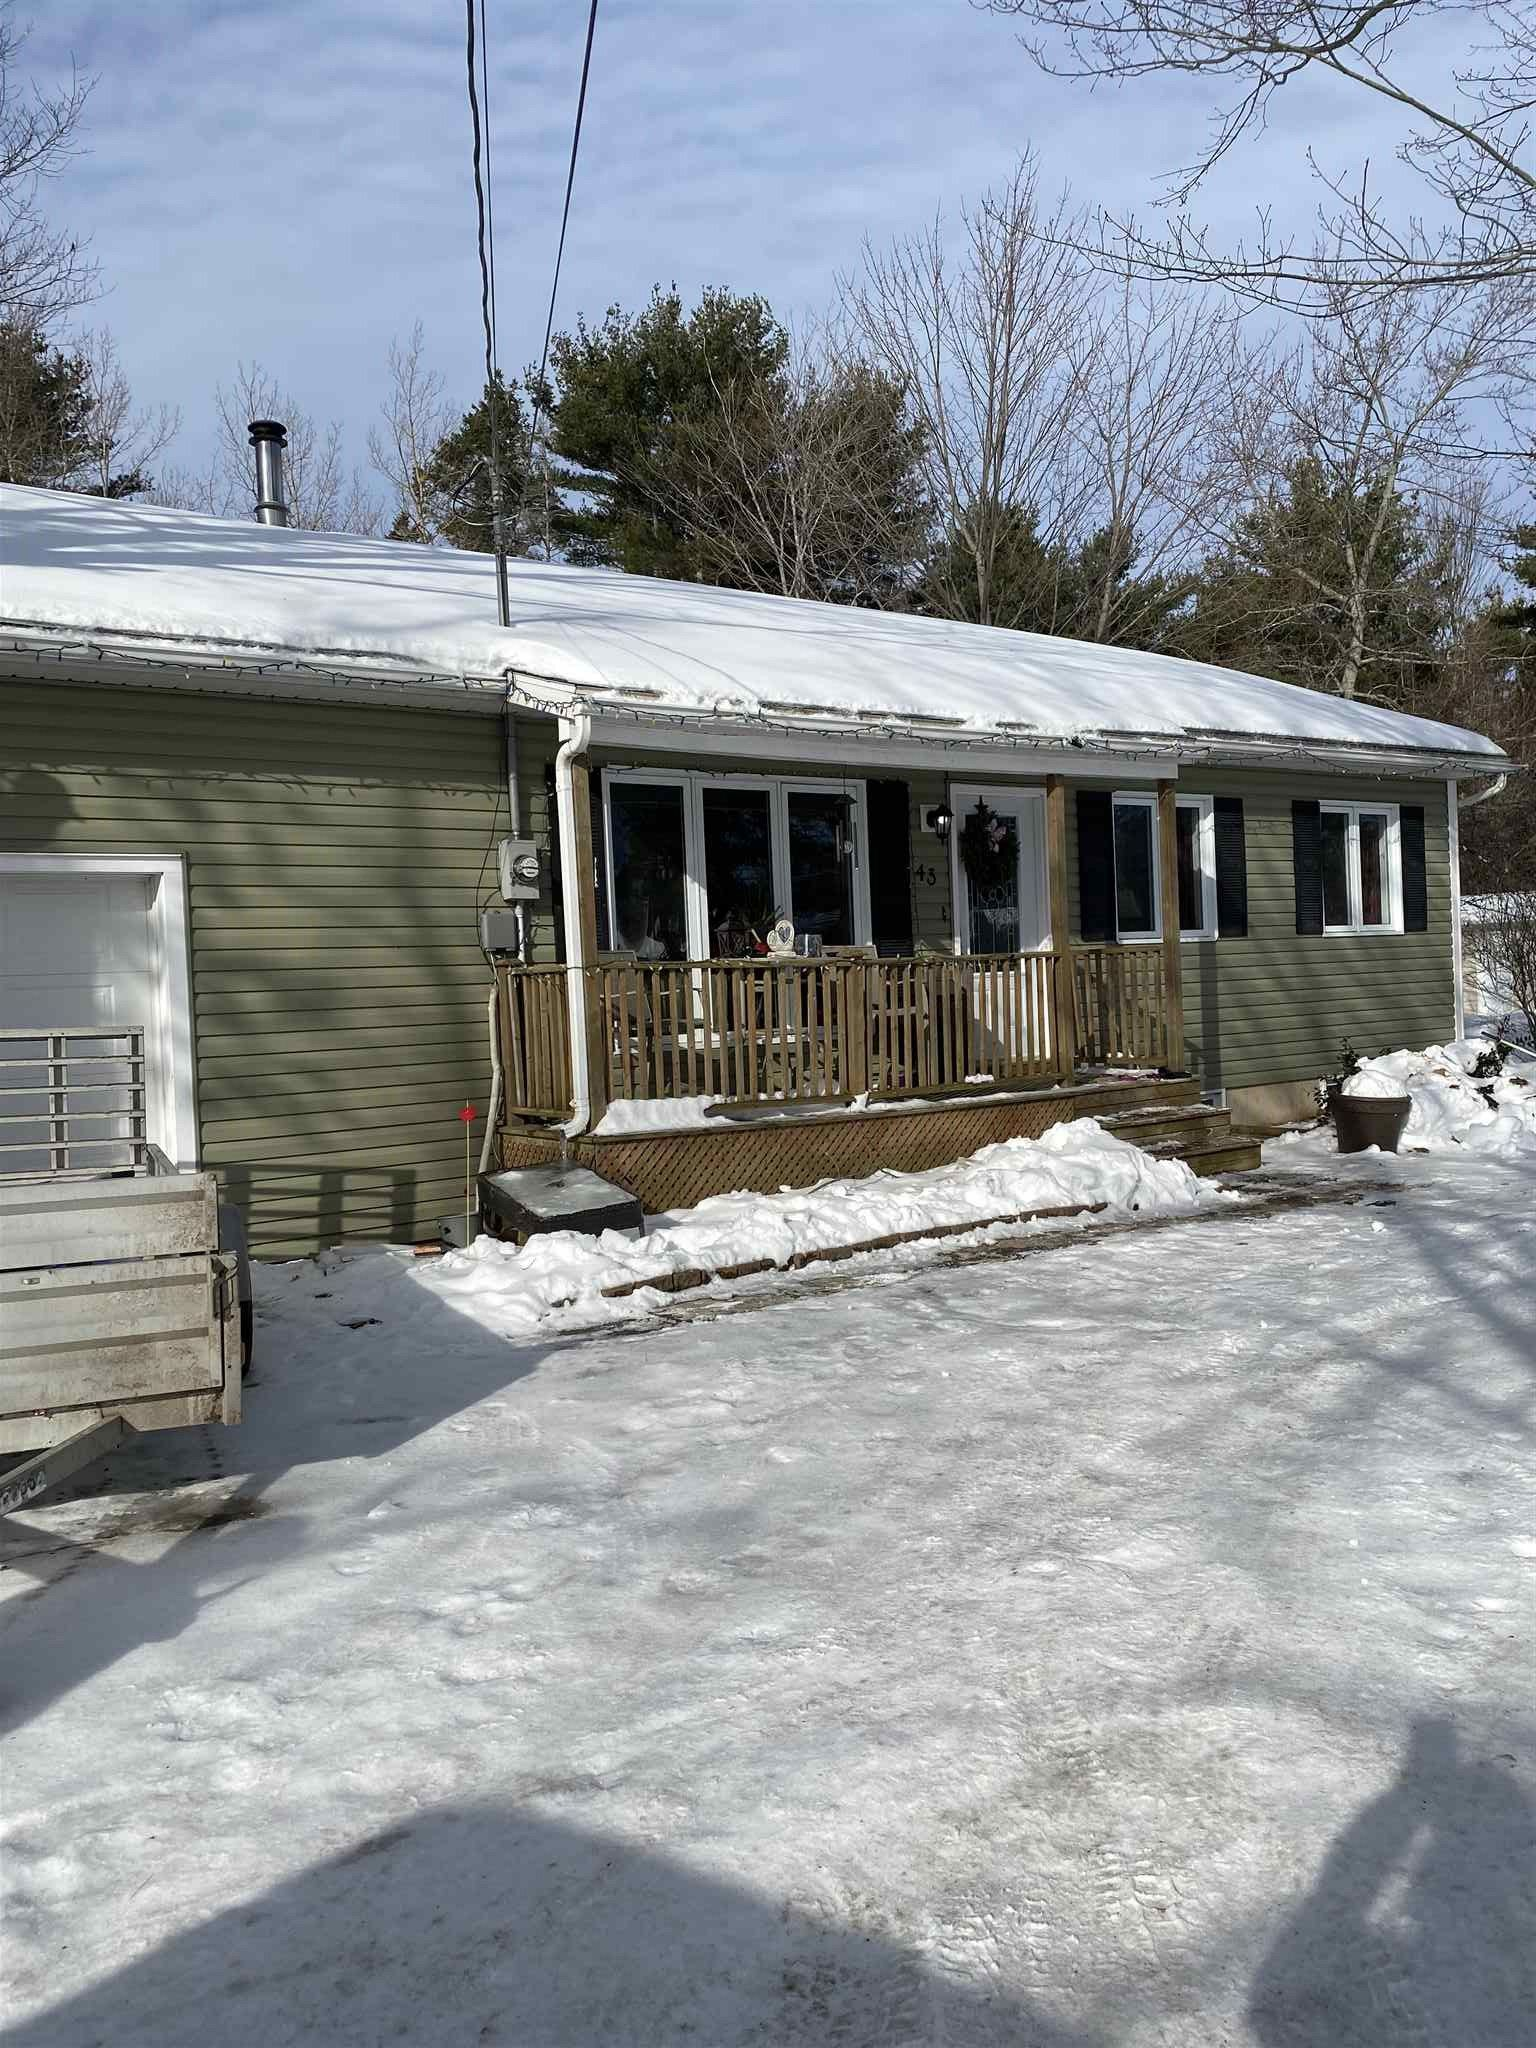 Main Photo: 43 Durno Drive in Cambridge: 404-Kings County Residential for sale (Annapolis Valley)  : MLS®# 202102961